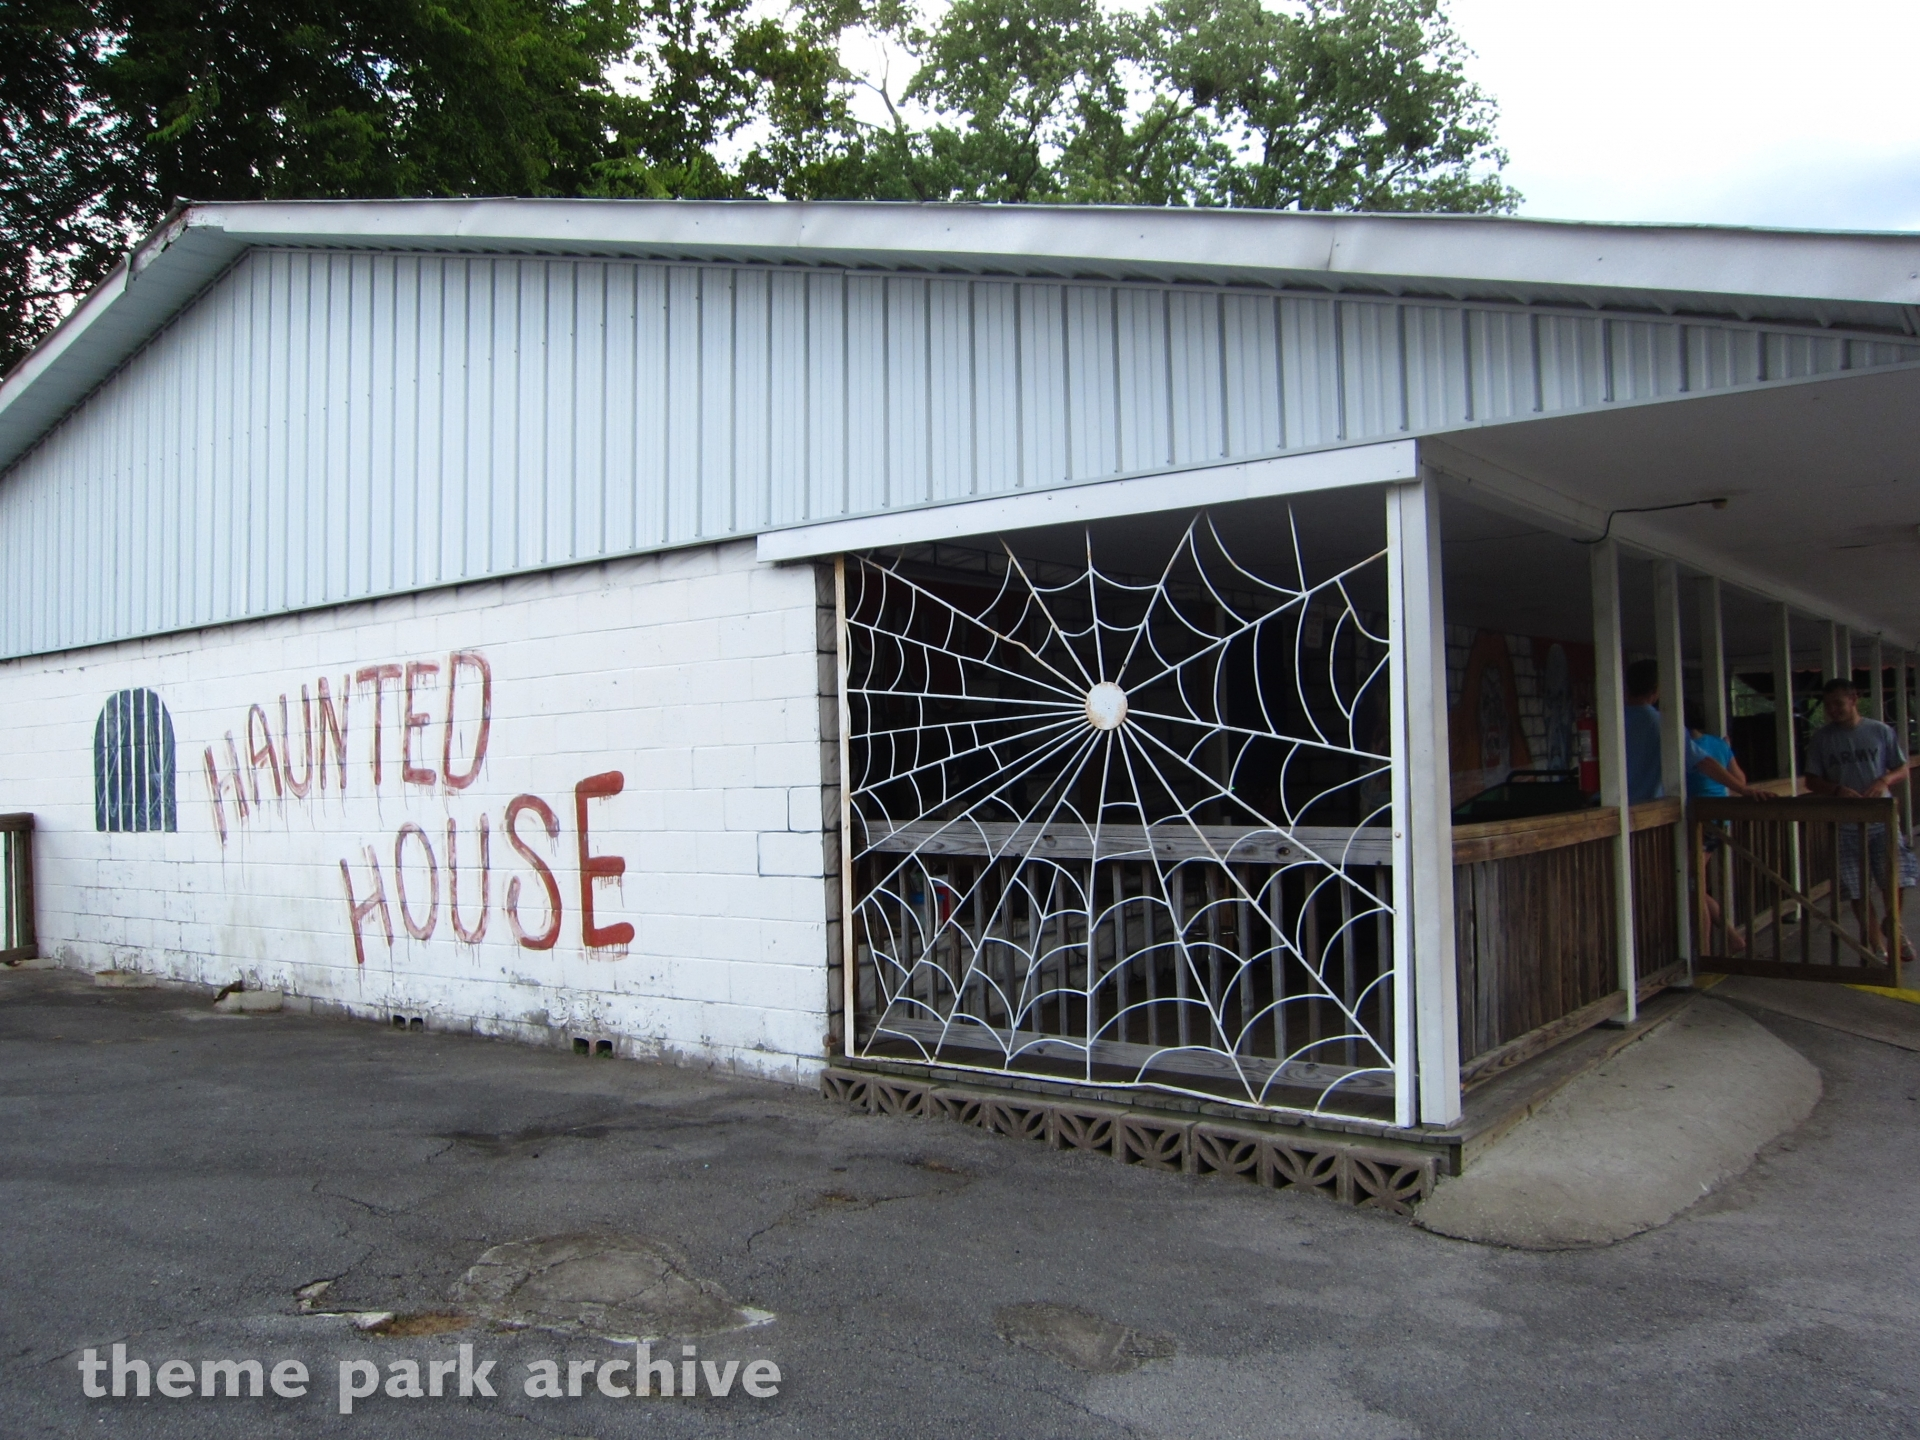 Haunted House at Beech Bend Park